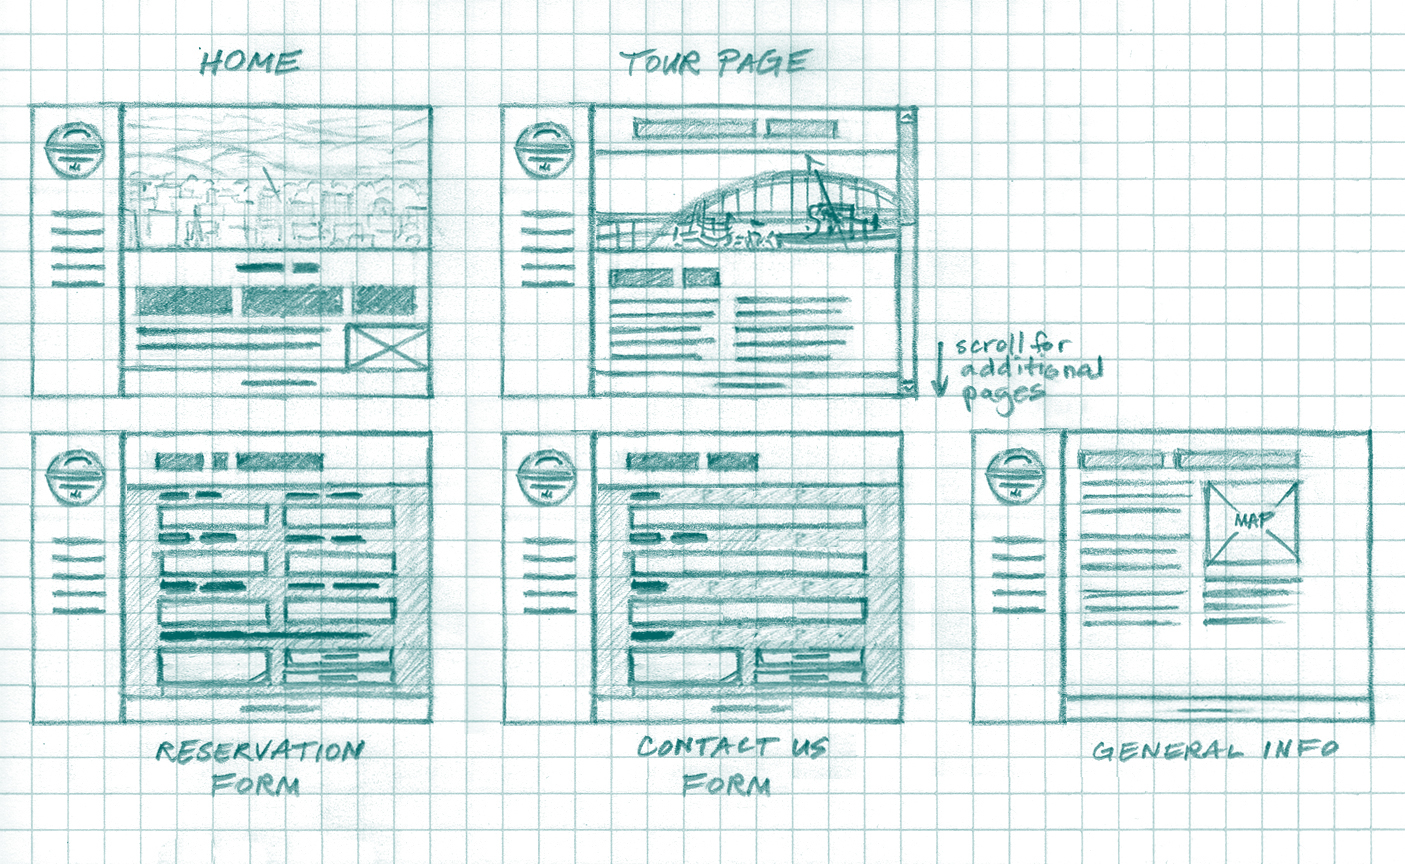 Portland Historical Tours - Wireframe Sketches